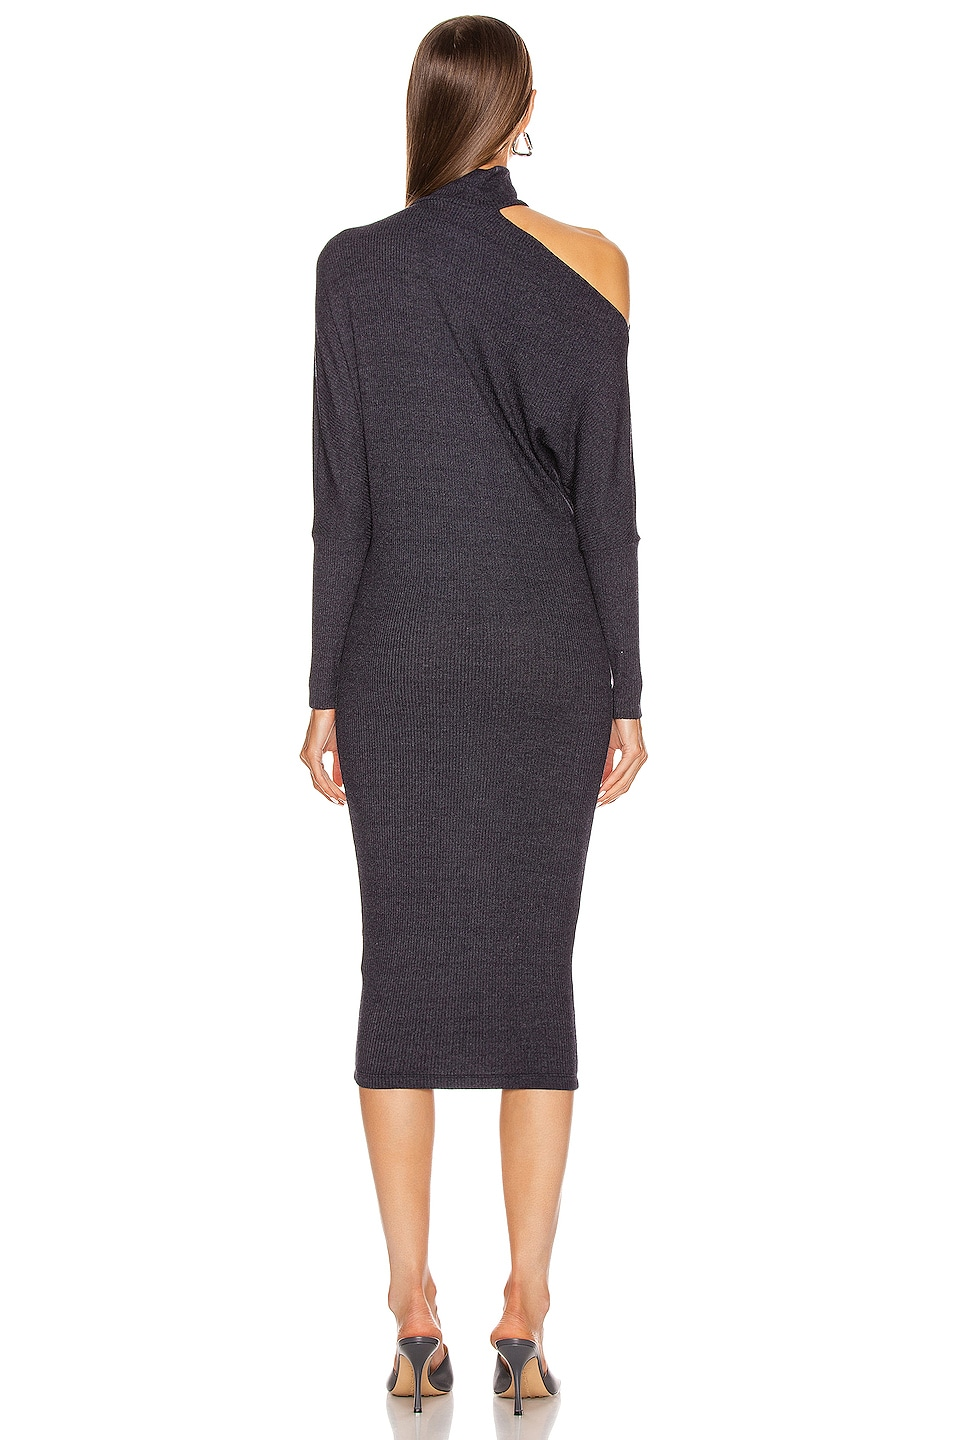 Image 4 of Enza Costa Heather Rib Exposed Shoulder Mock Midi Dress in Ink